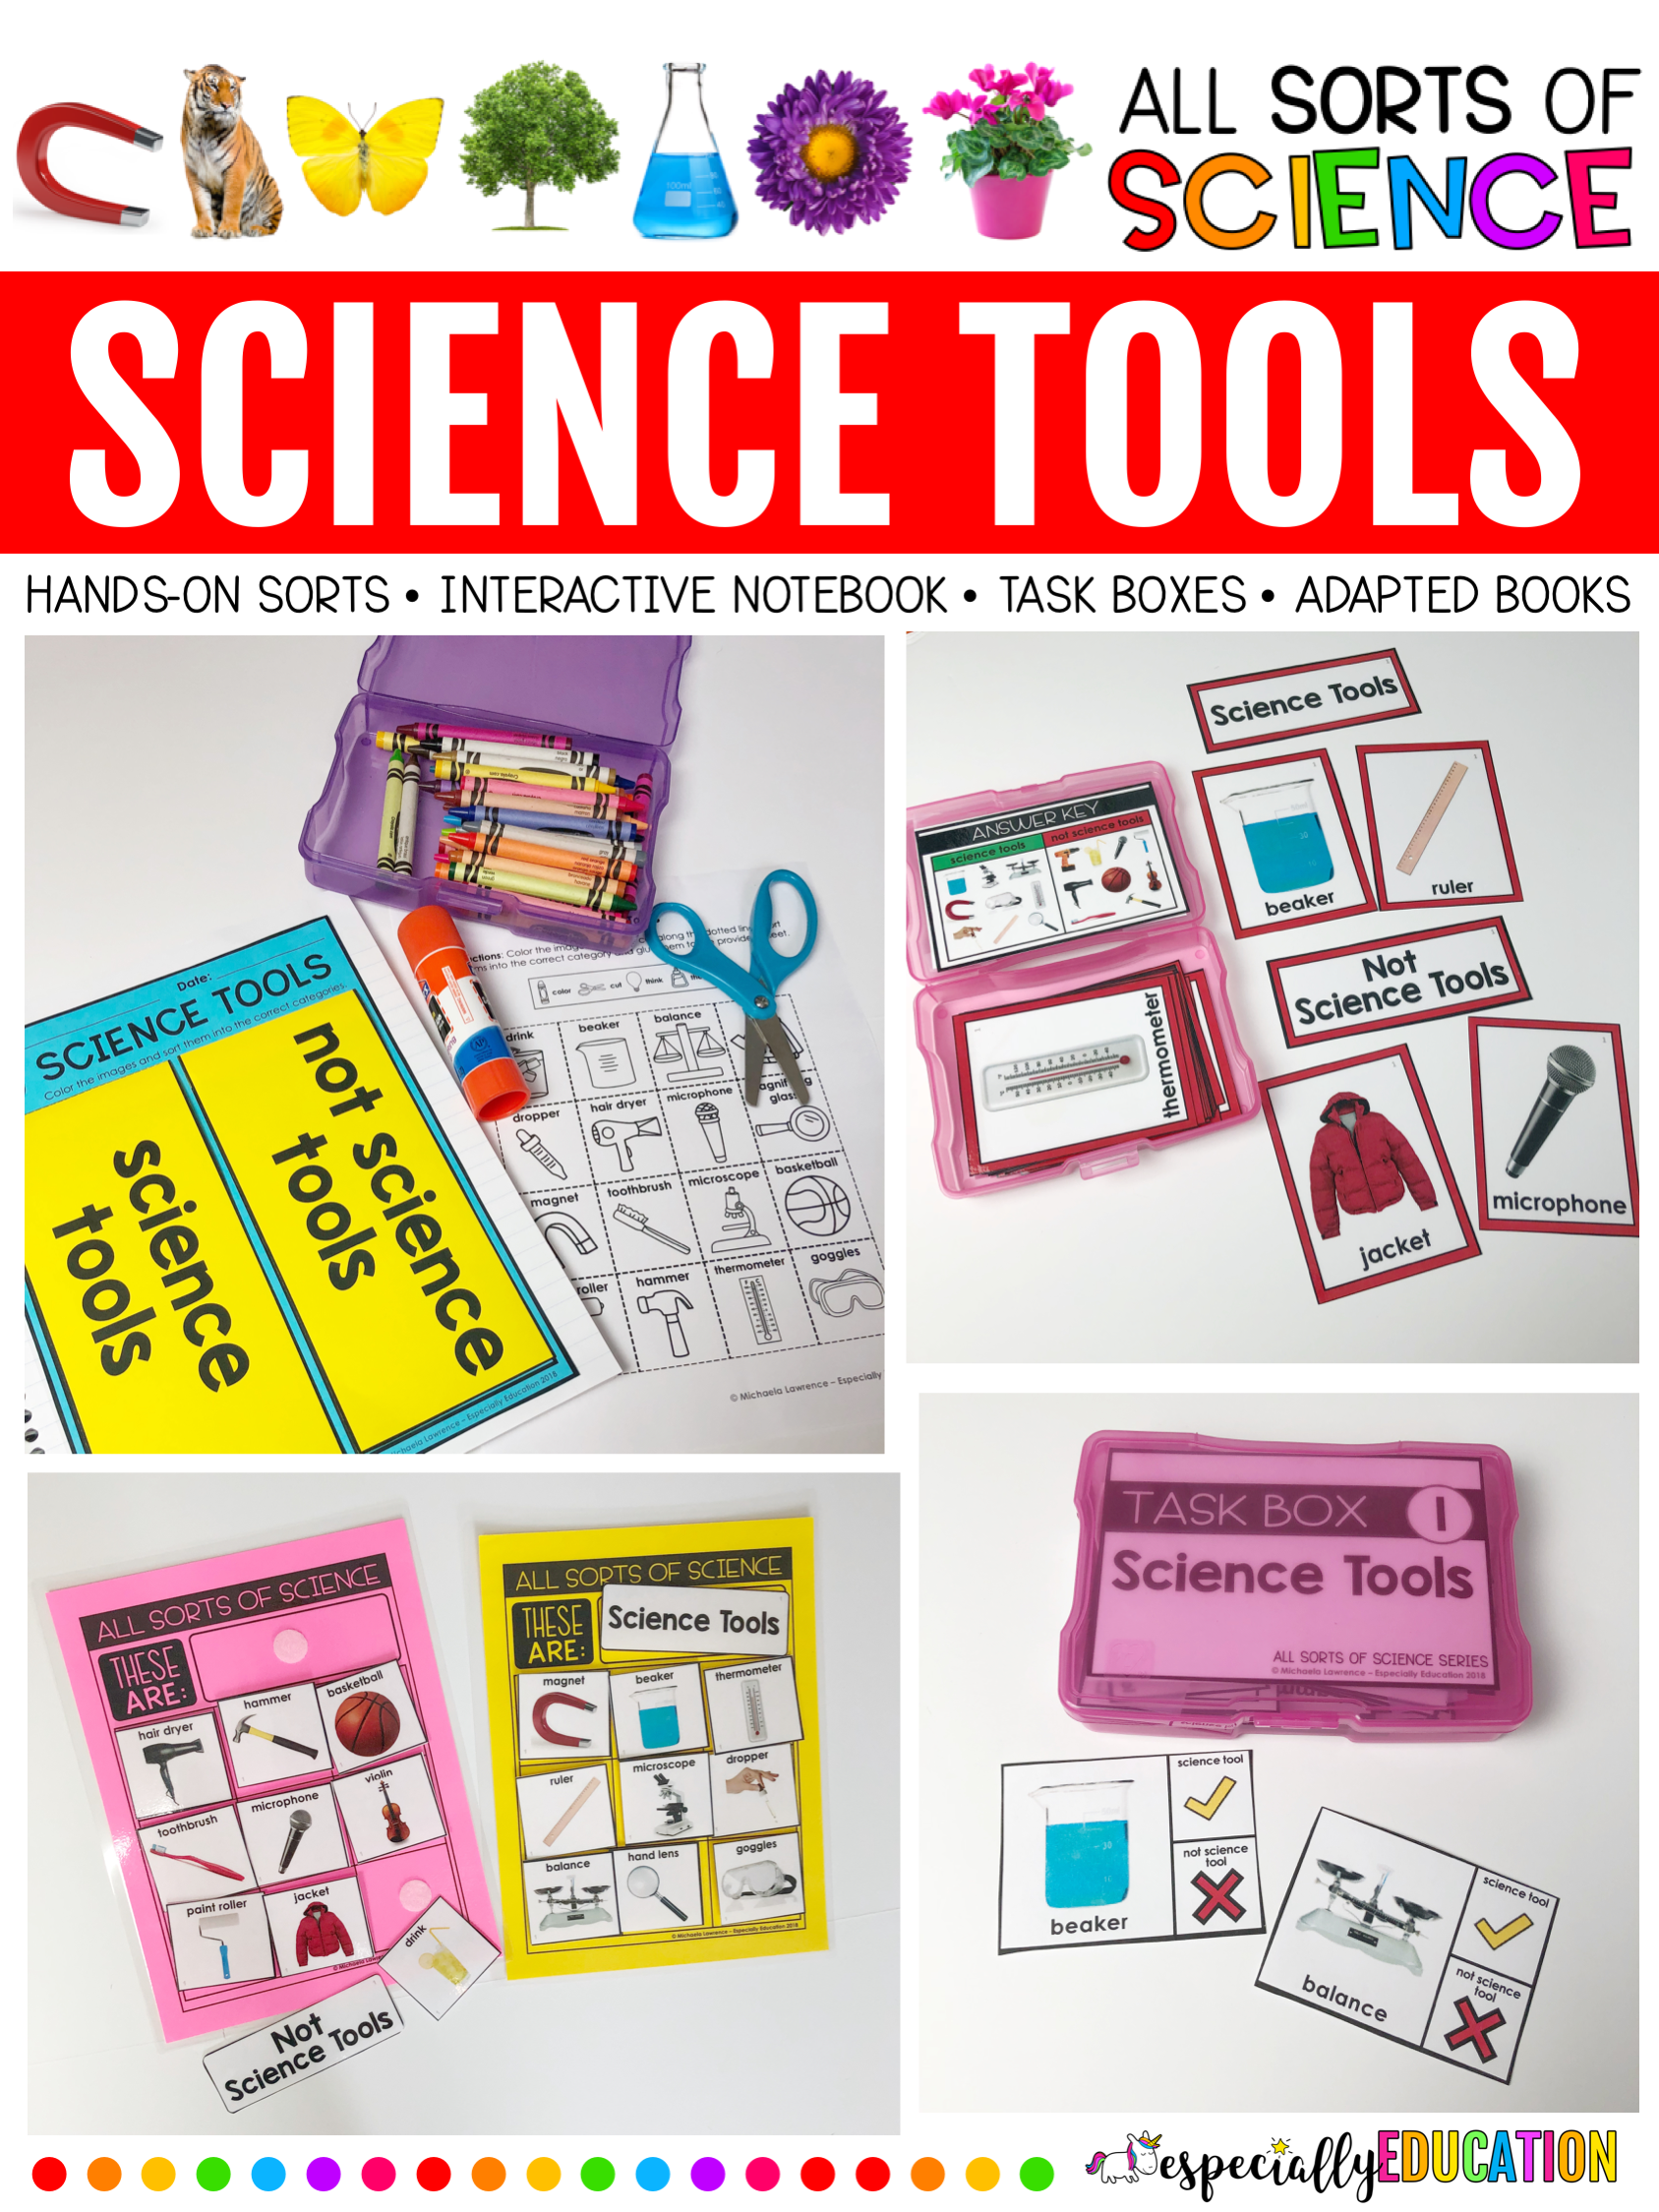 Science Tools All Sorts Of Science Series